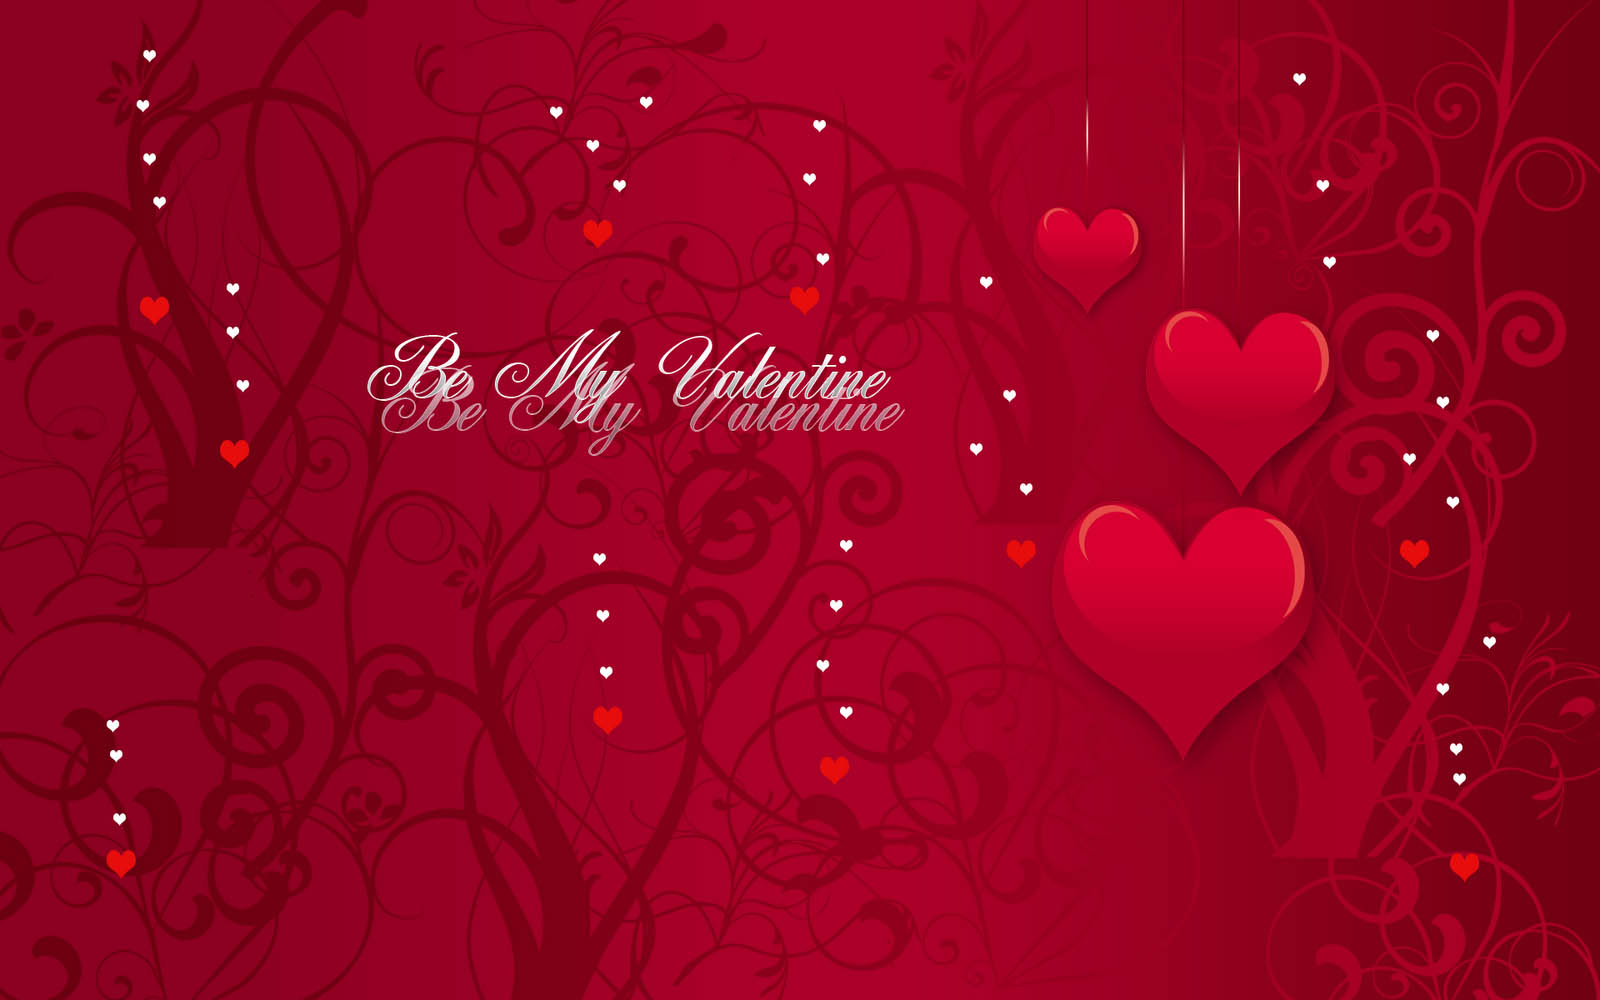 wallpapers Valentines Day Desktop Wallpapers 1600x1000